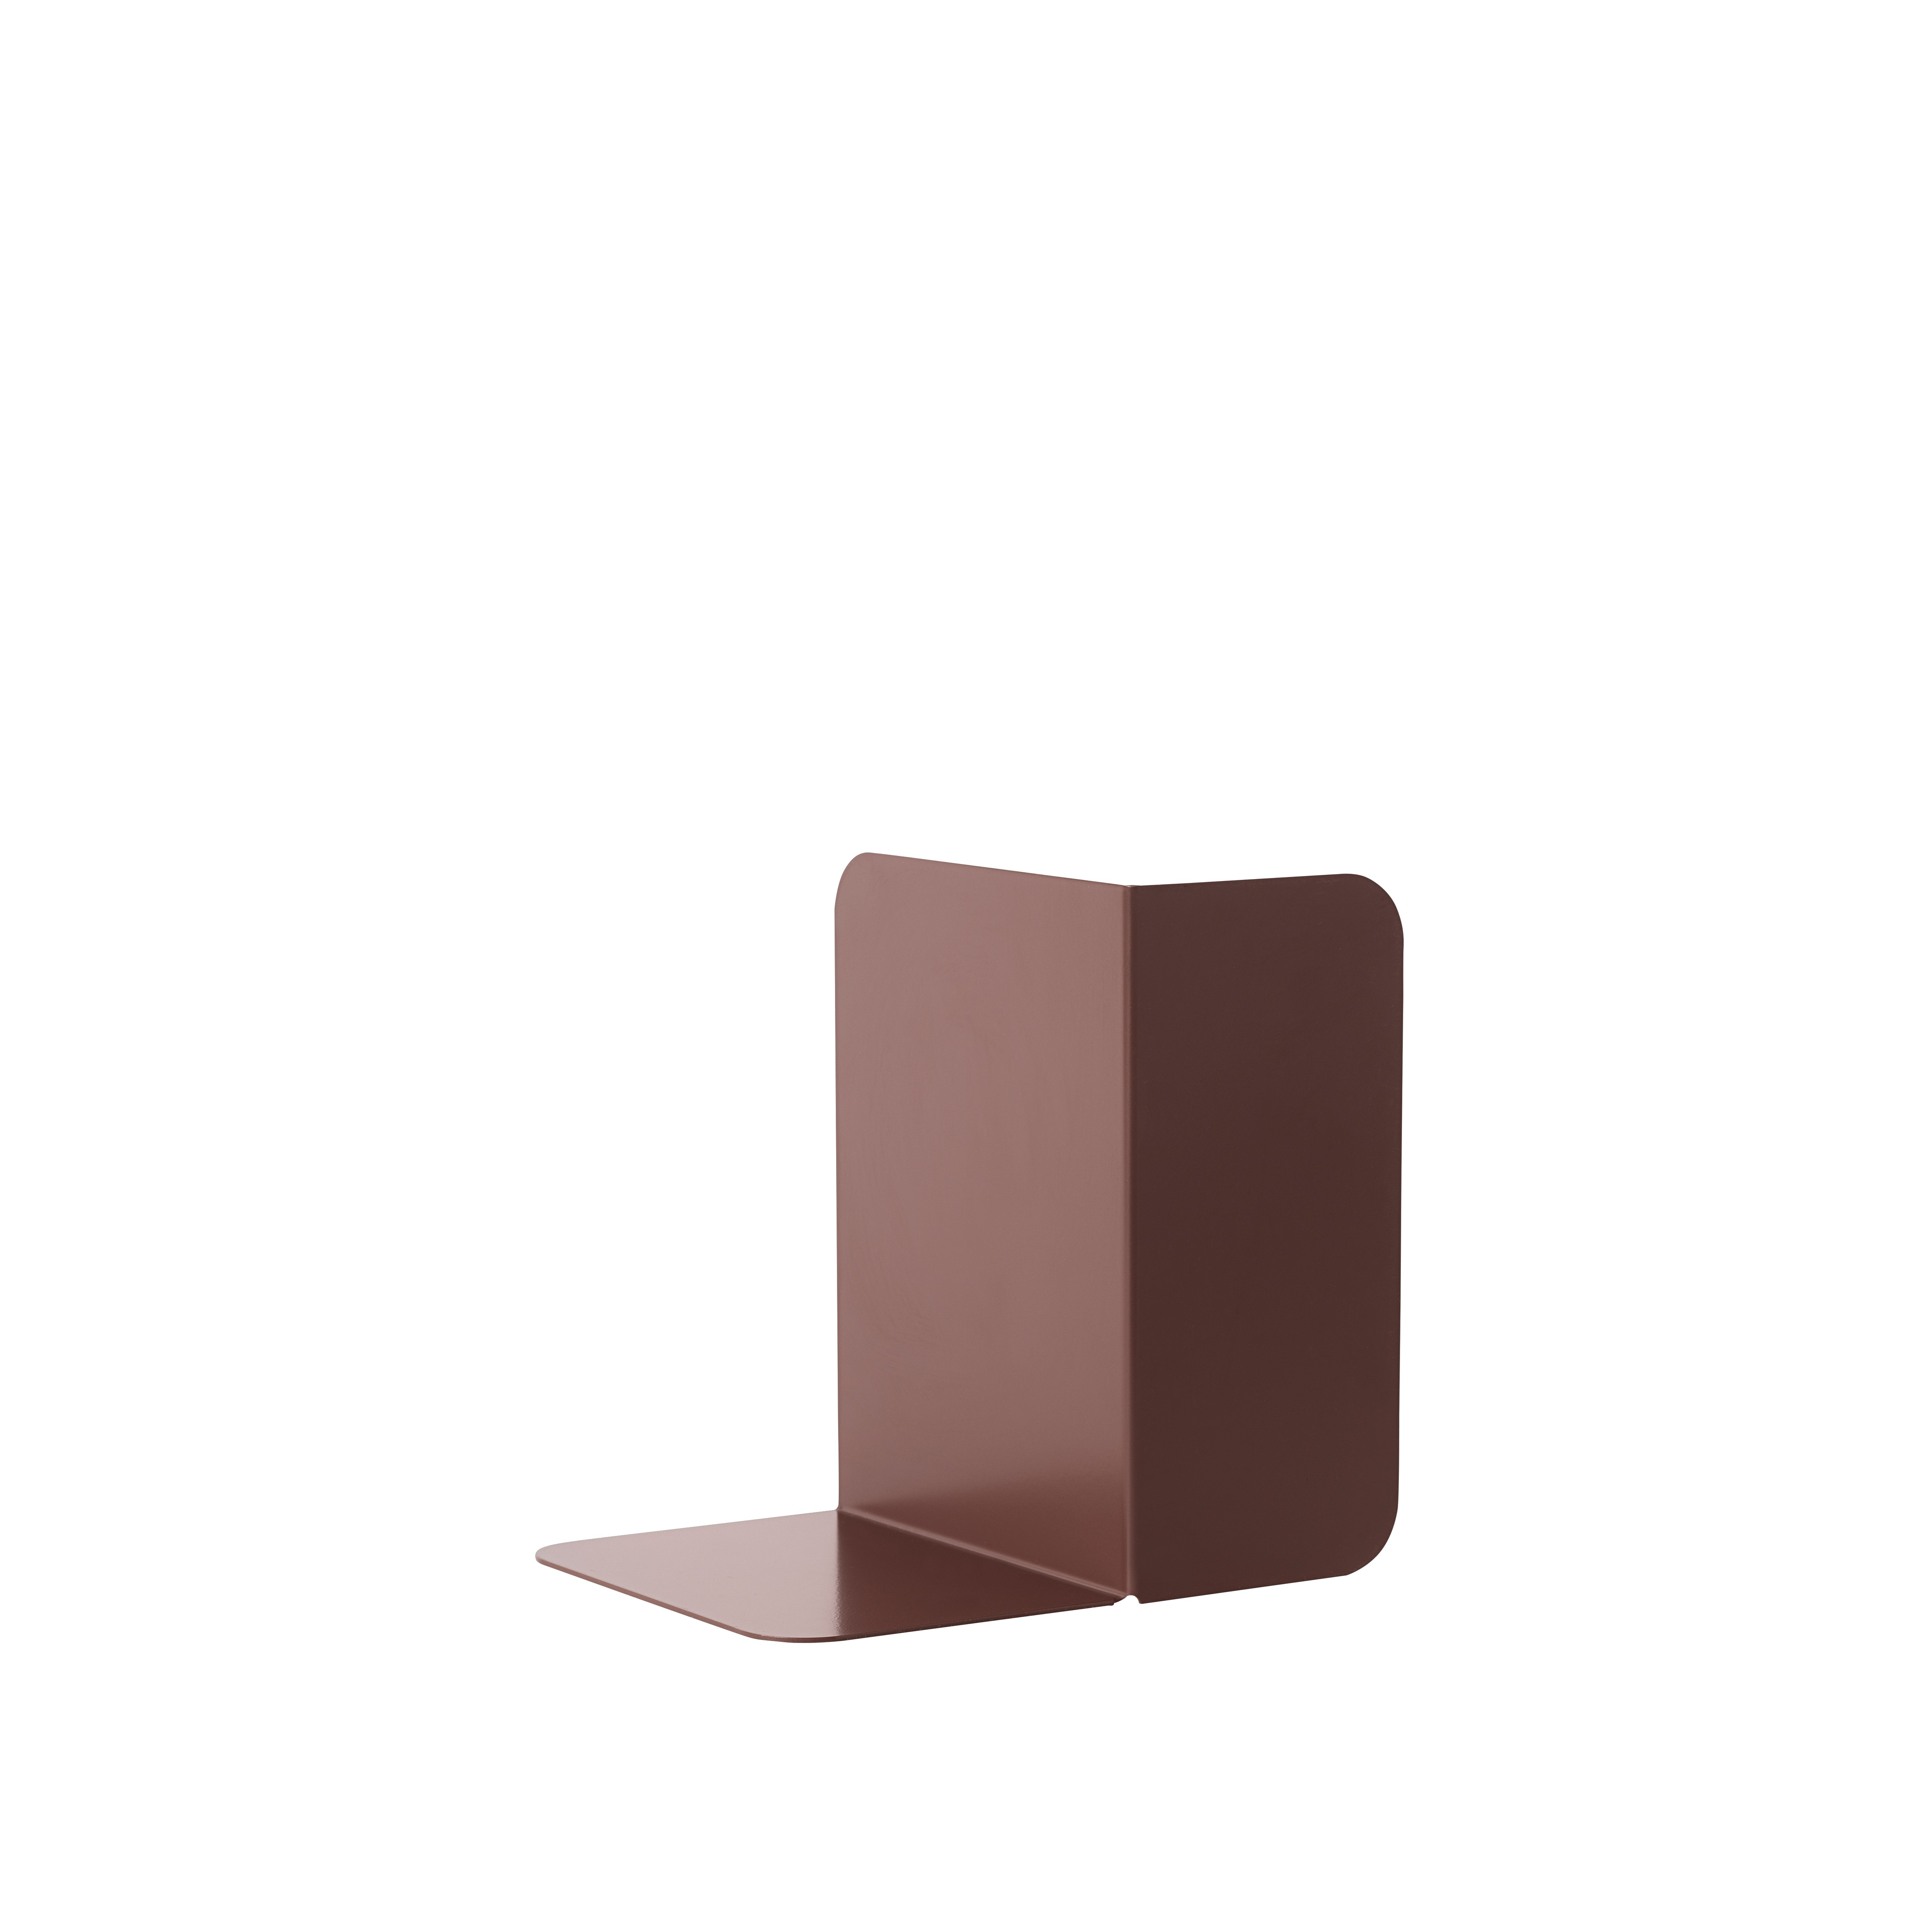 Compile Bookend Muuto - Plum